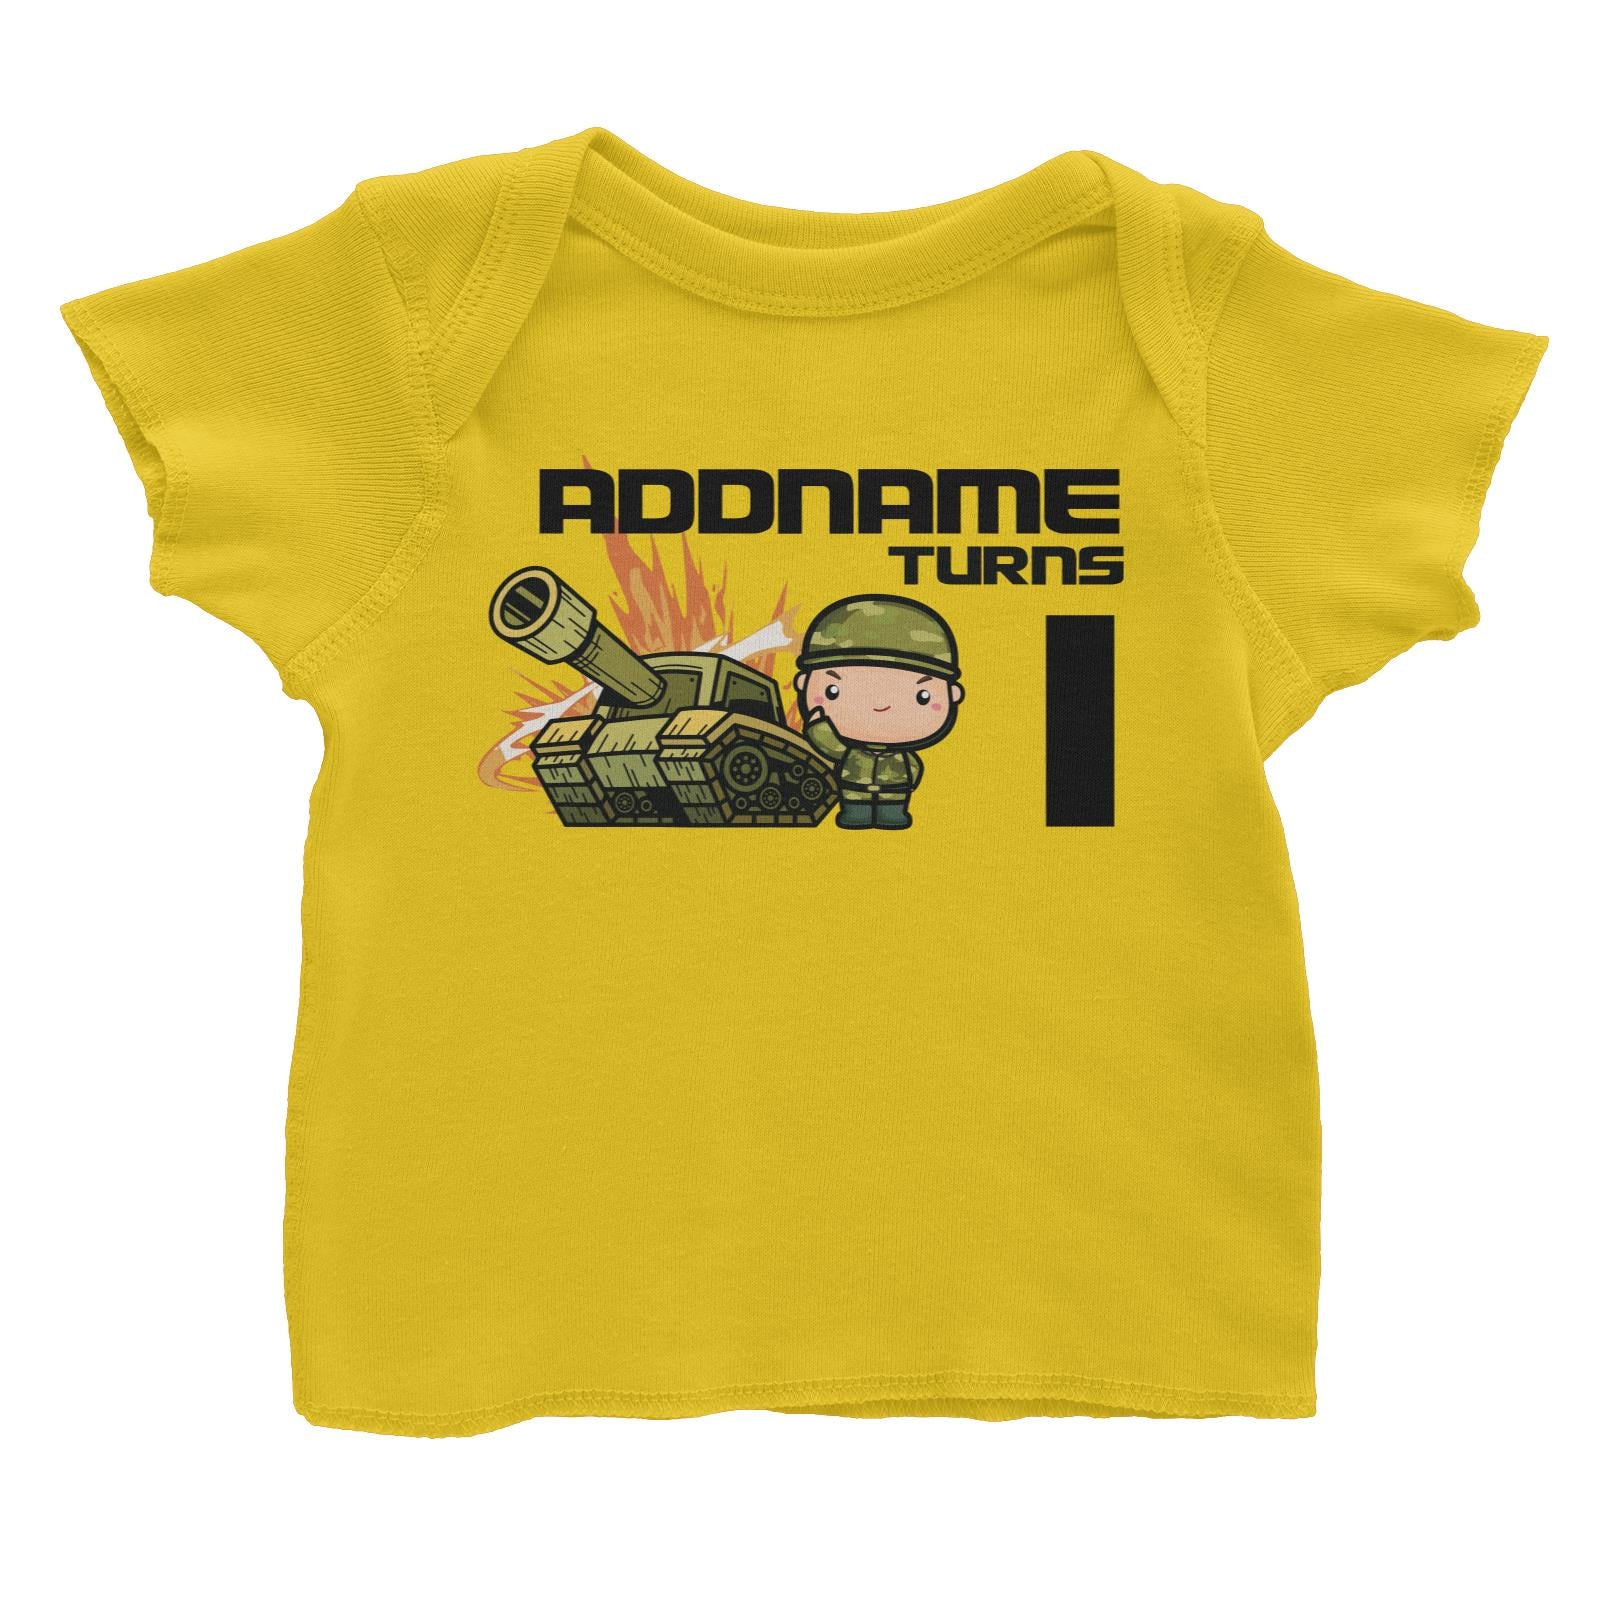 Birthday Battle Theme Tank And Army Soldier Boy Addname Turns 1 Baby T-Shirt